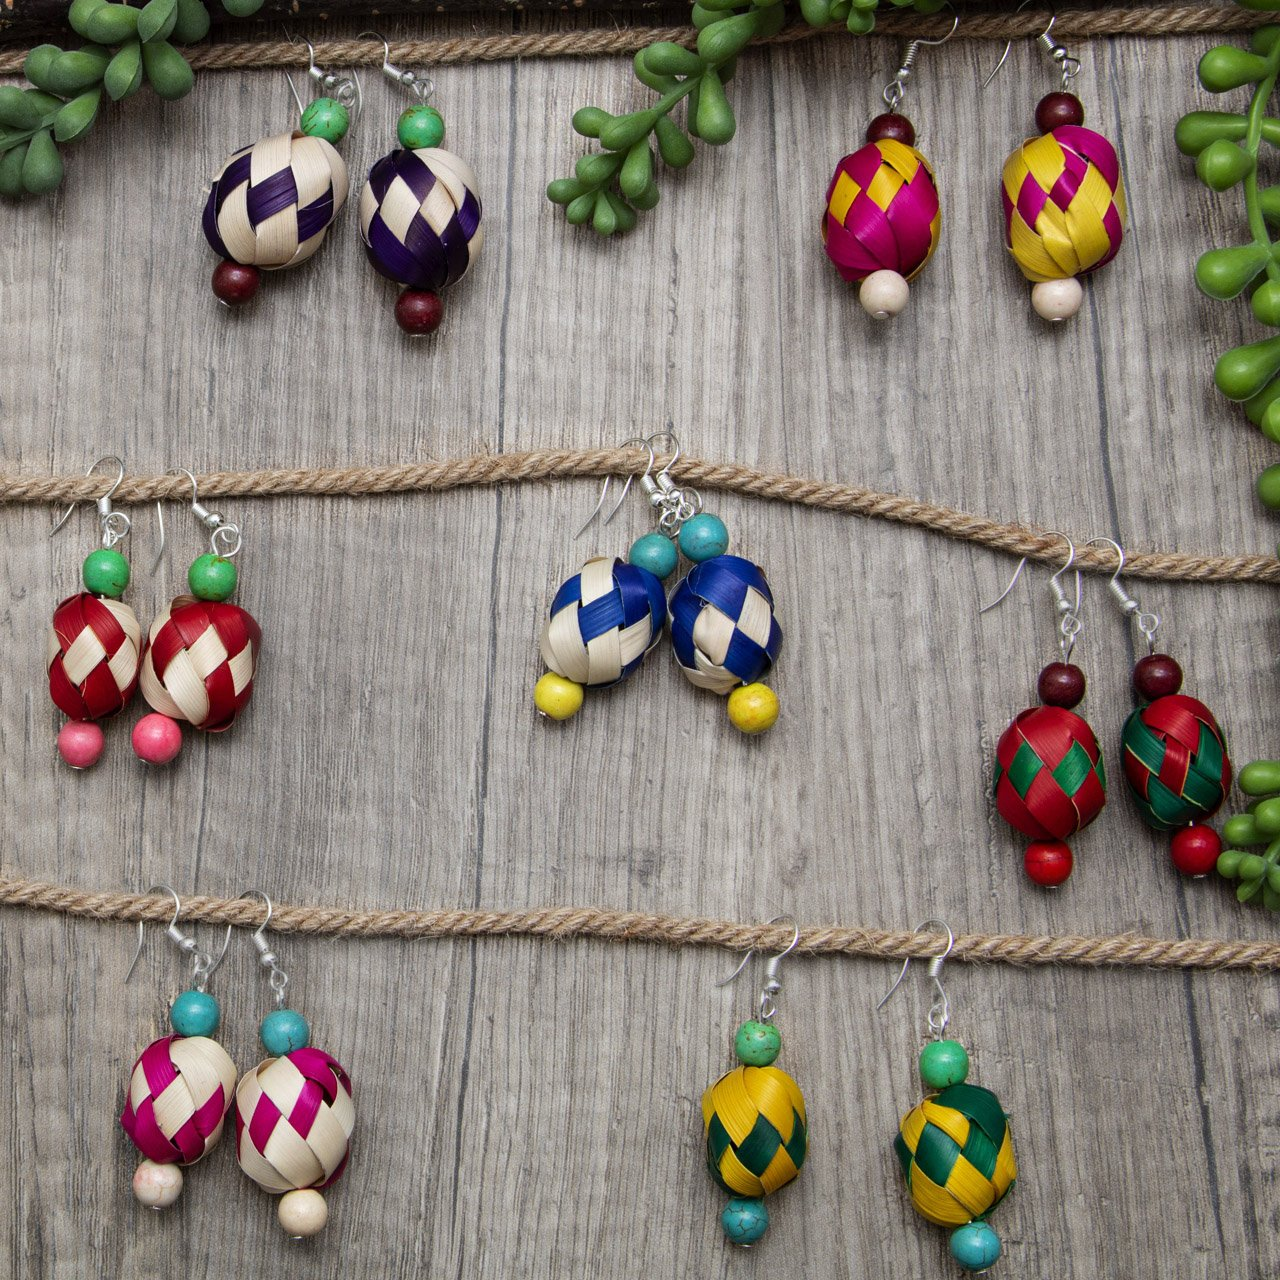 Colorful Woven Palm Beads Earrings